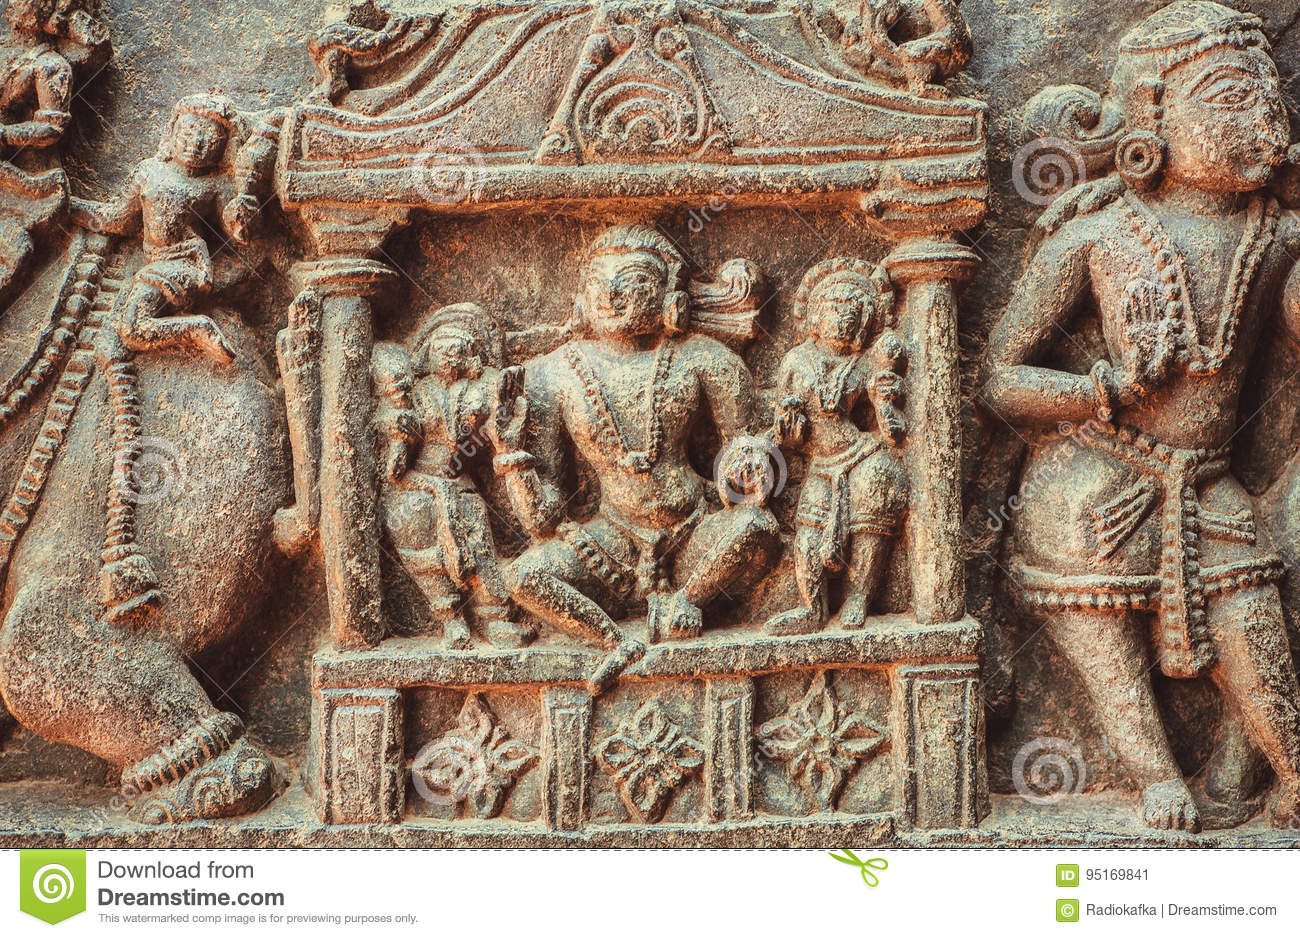 King or reach man sitting on sculpured stone relief